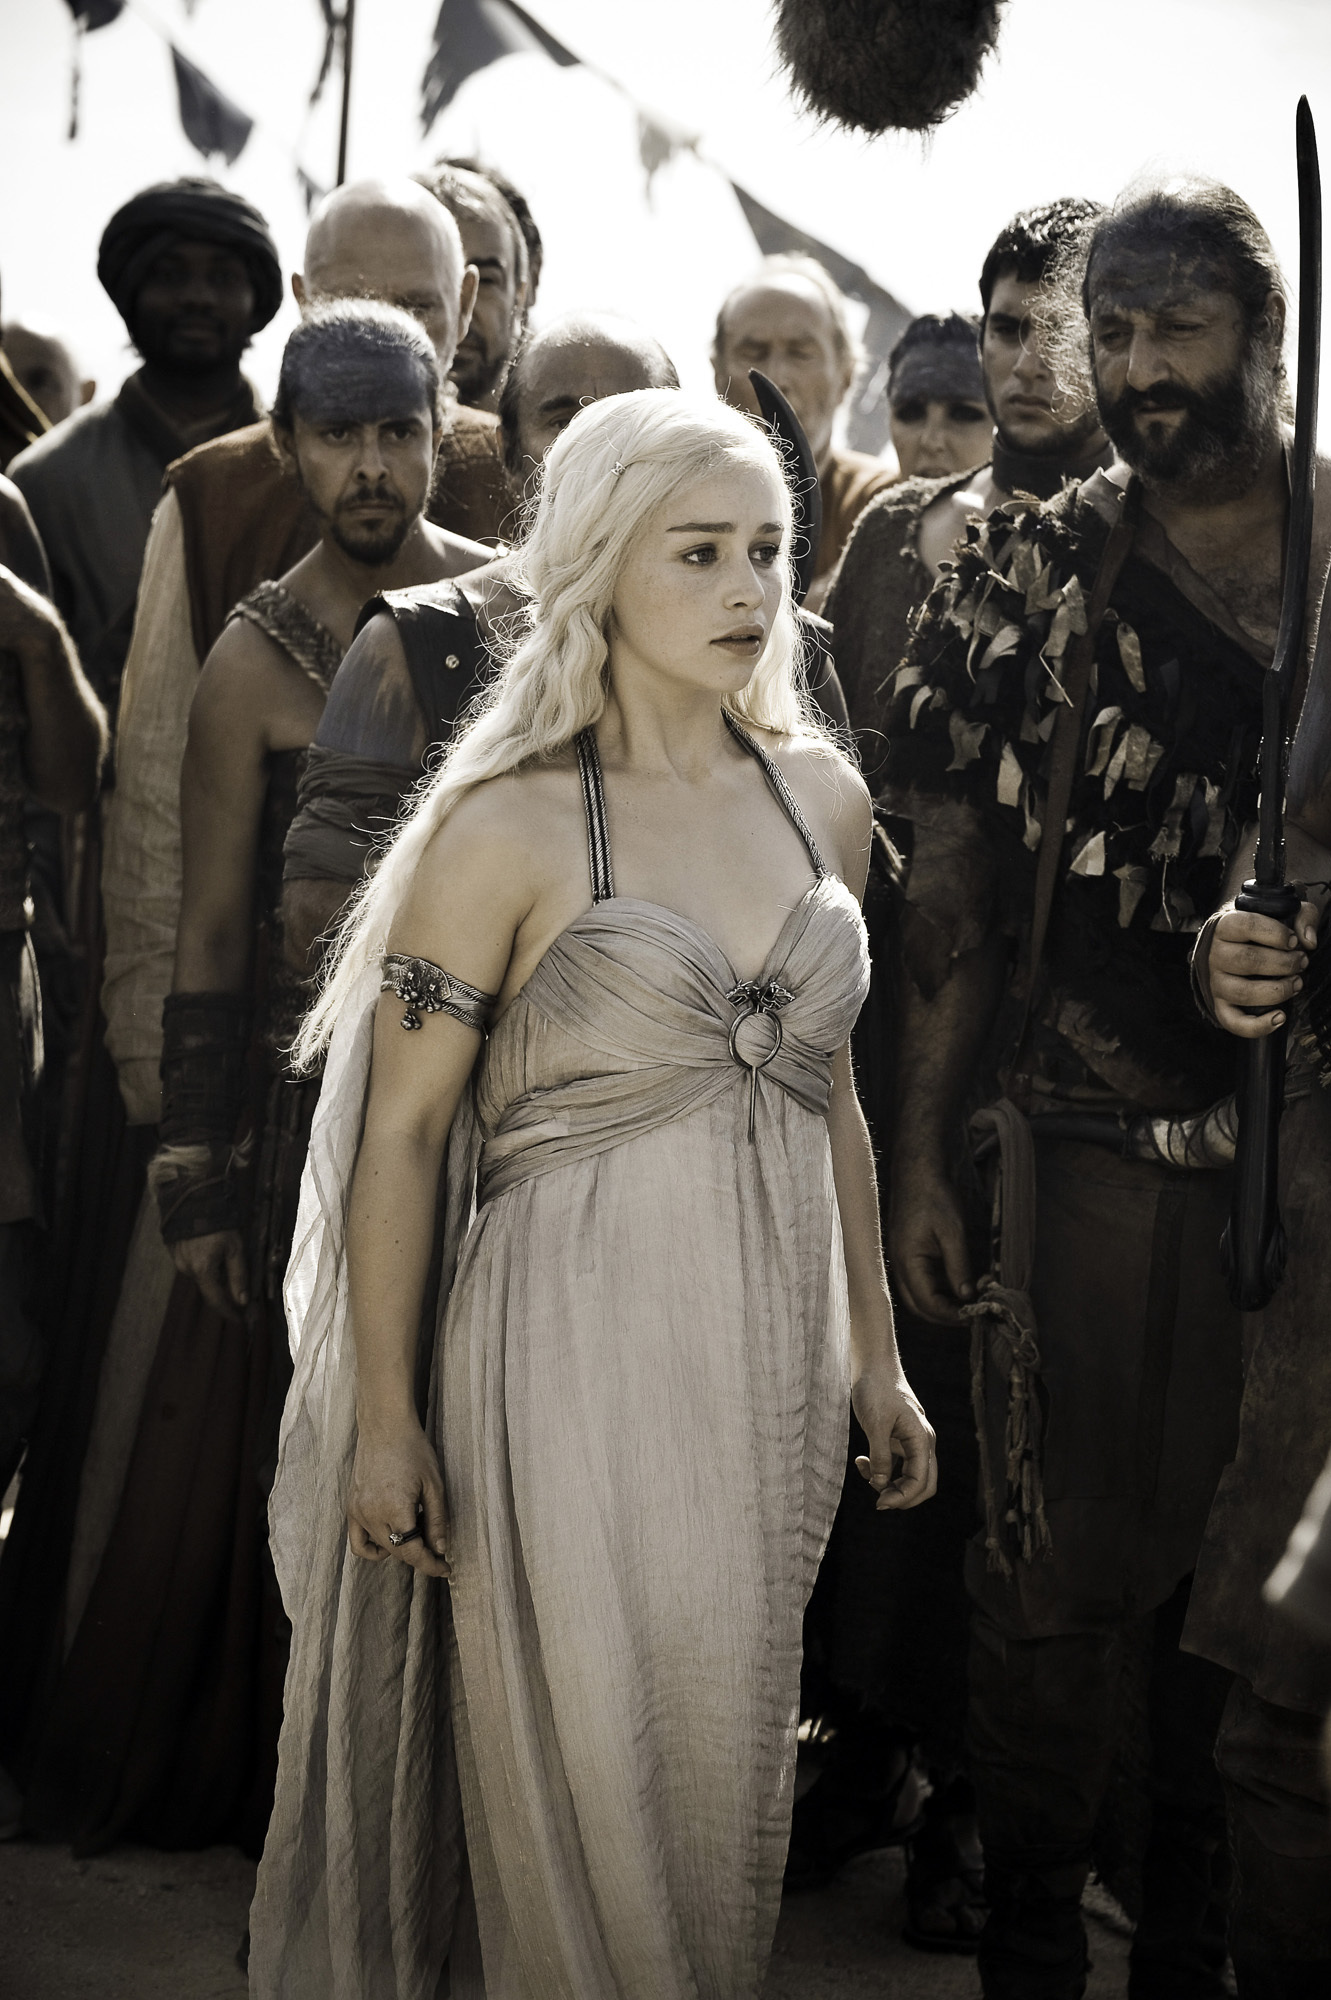 Dany Game Of Thrones Photo 20187104 Fanpop